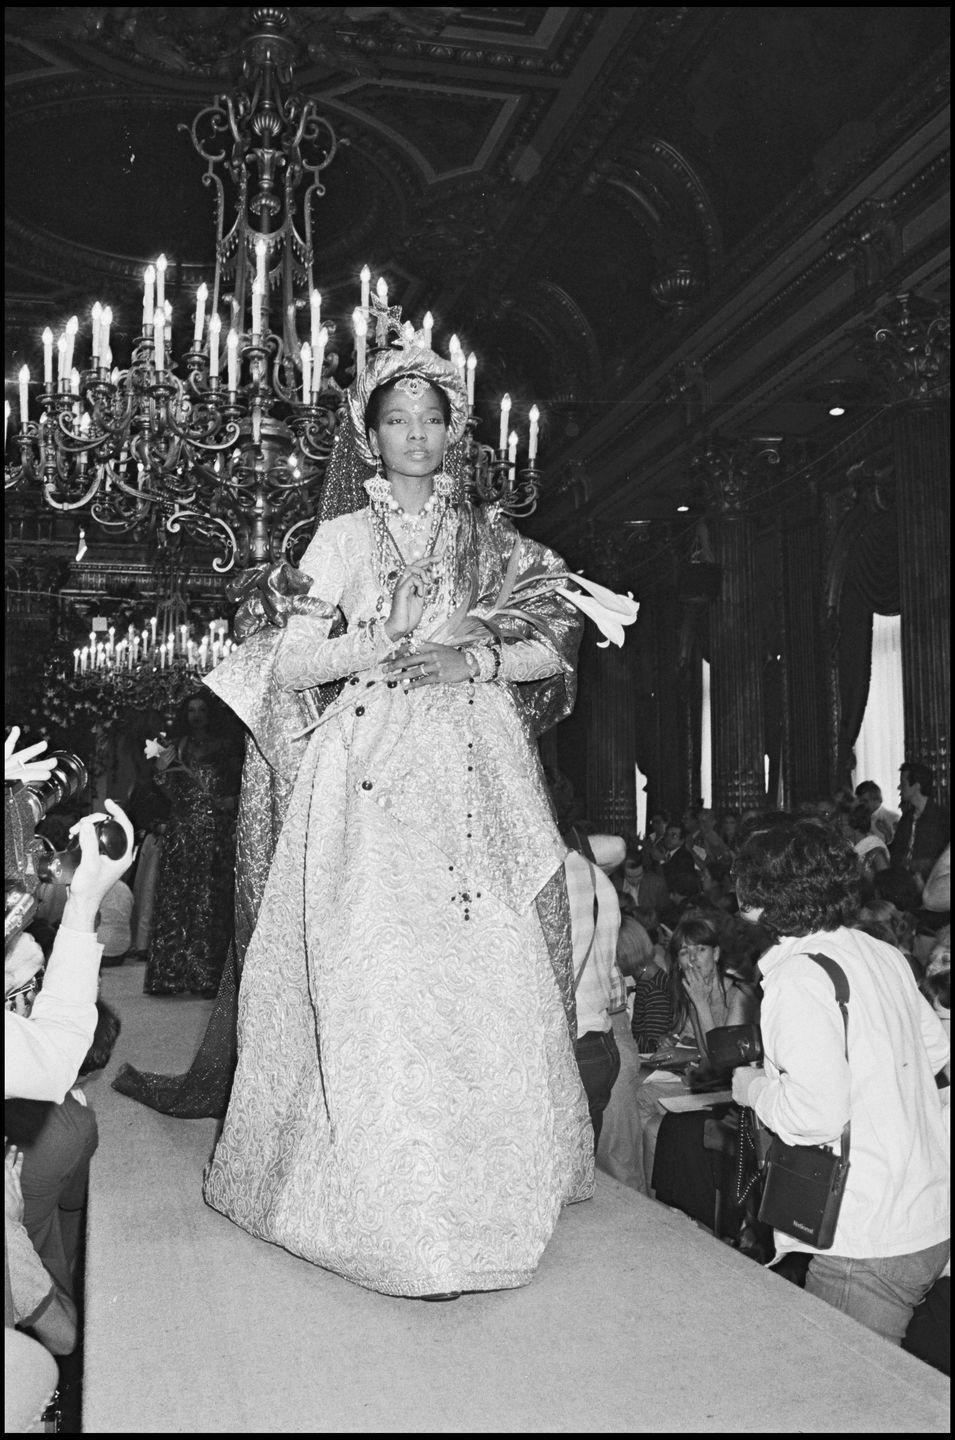 "<p>A muse of Yves Saint Laurent's in the 1970s and '80s, she was the <a href=""https://www.crfashionbook.com/fashion/g13987059/ysl-muses-throughout-history/"" rel=""nofollow noopener"" target=""_blank"" data-ylk=""slk:first Black model he booked in his haute couture shows"" class=""link rapid-noclick-resp"">first Black model he booked in his haute couture shows</a>. Throughout her modeling career, she almost exclusively worked with Saint Laurent.</p>"